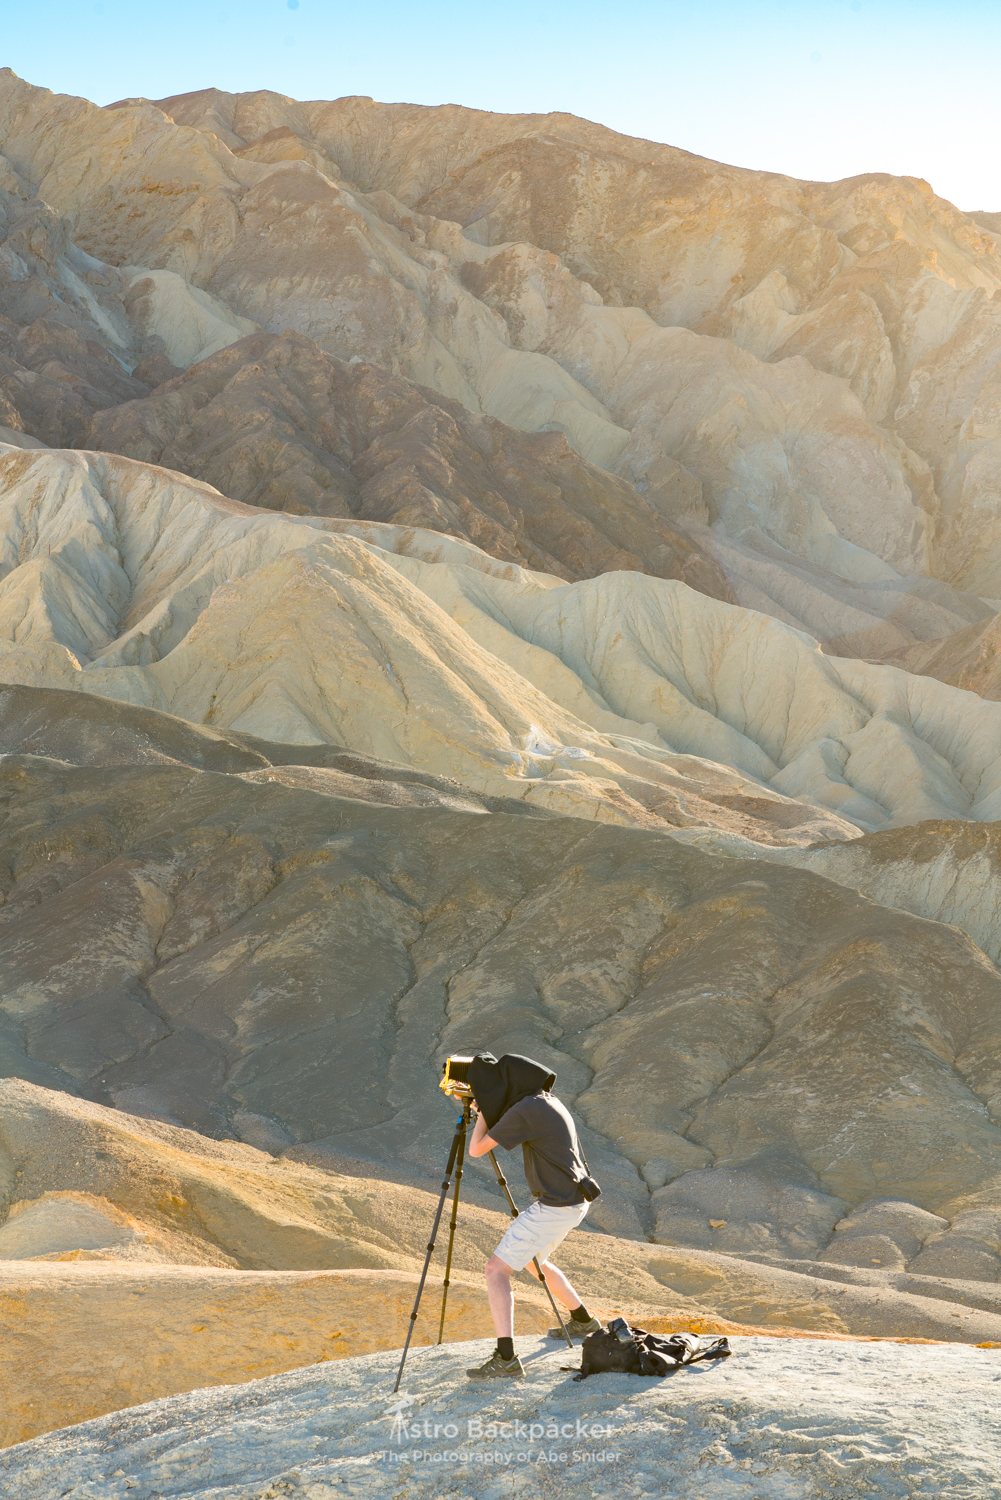 Andy Orr shooting his Large Format Film at Death Valley National Park on Boxing Day.